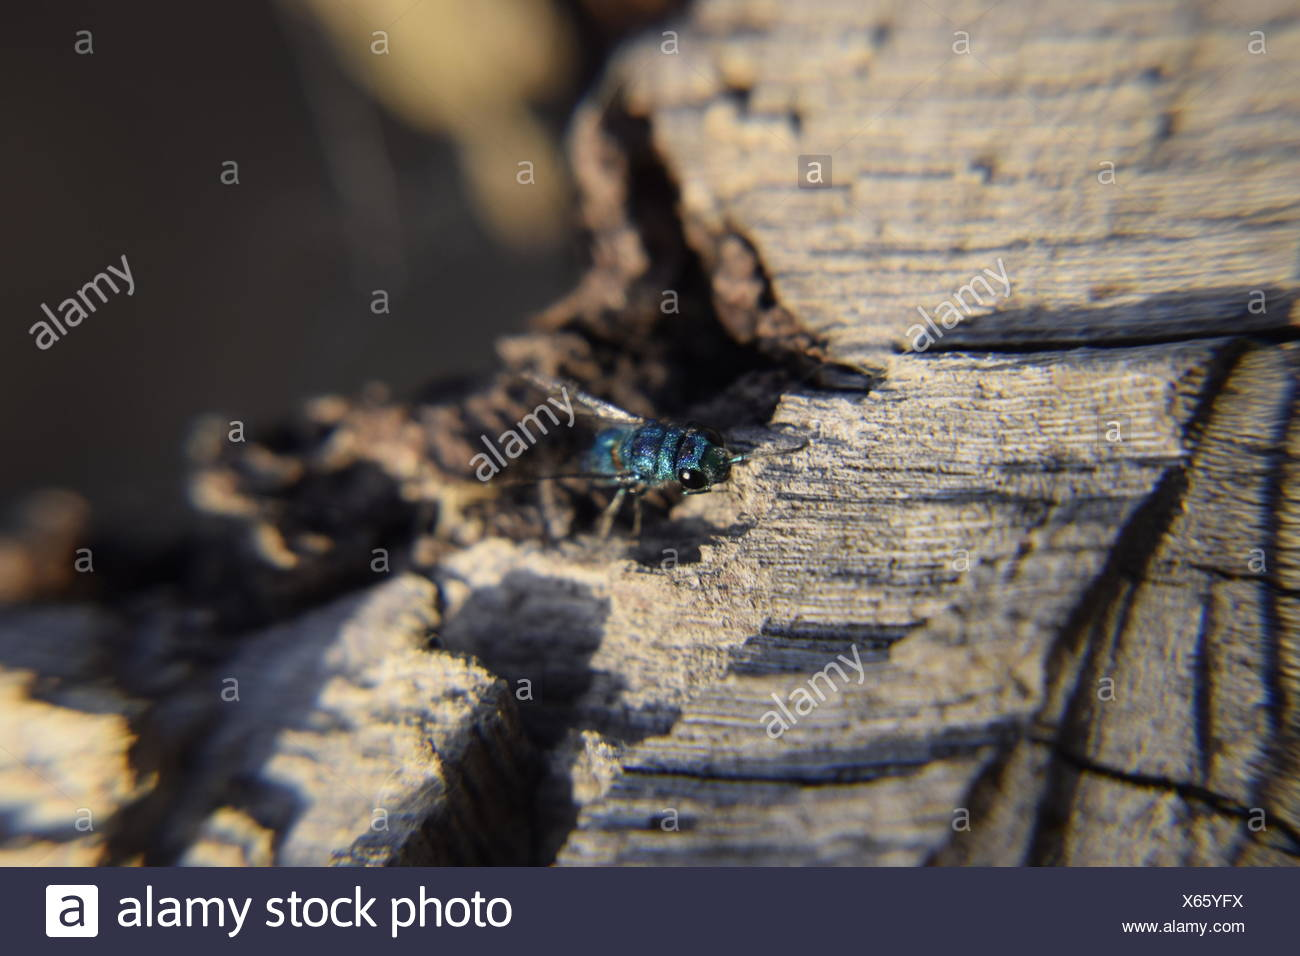 Ruby - tailed wasp - Stock Image